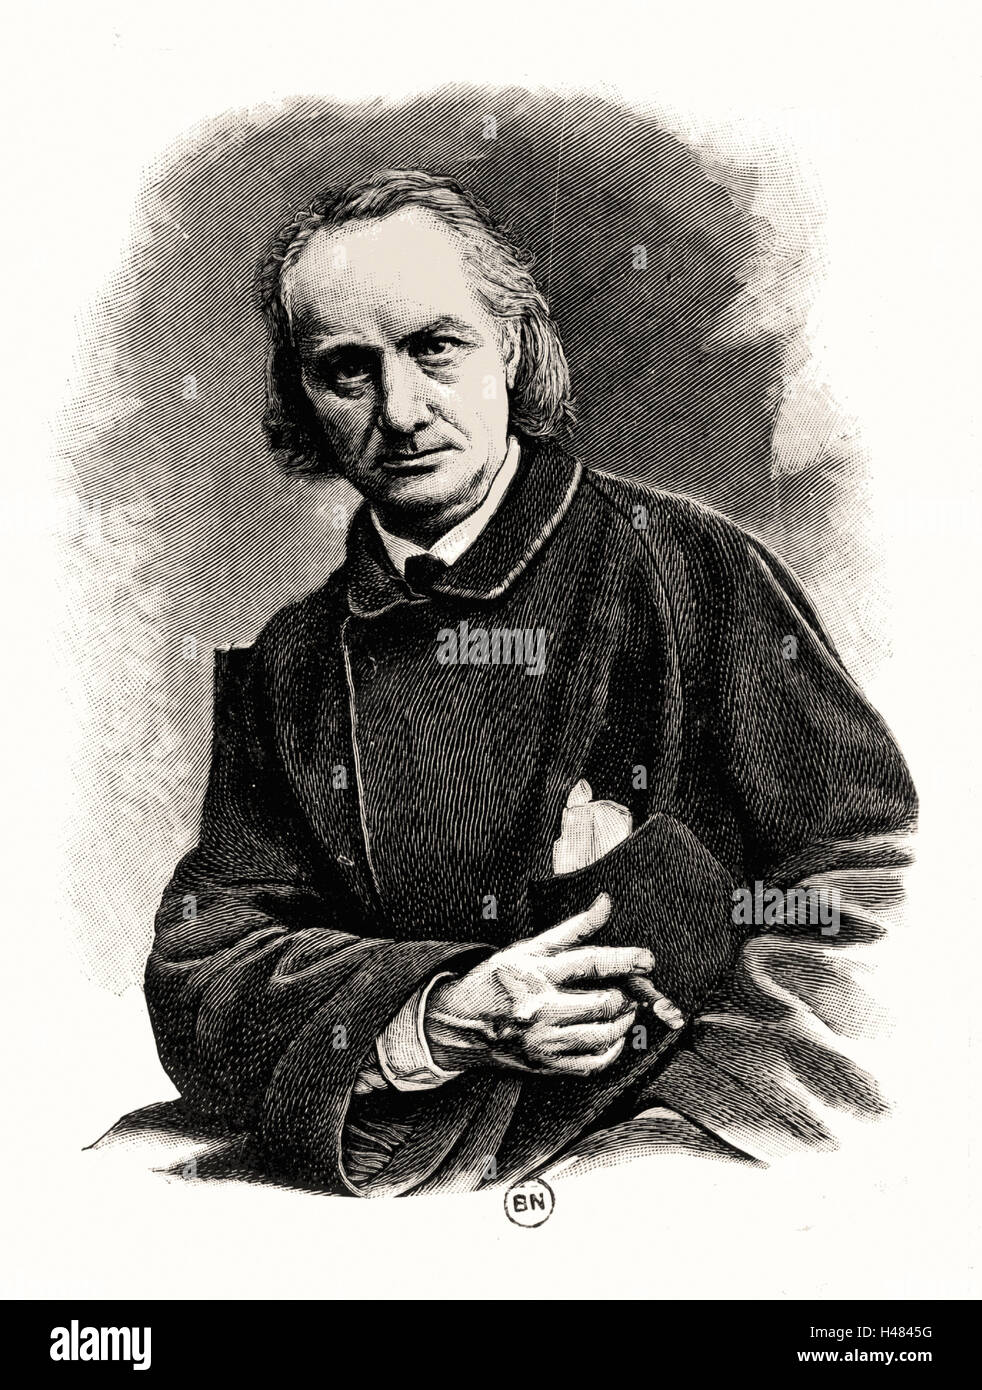 Charles Pierre Baudelaire (1821-1867) French poet, critic and translator. - Stock Image